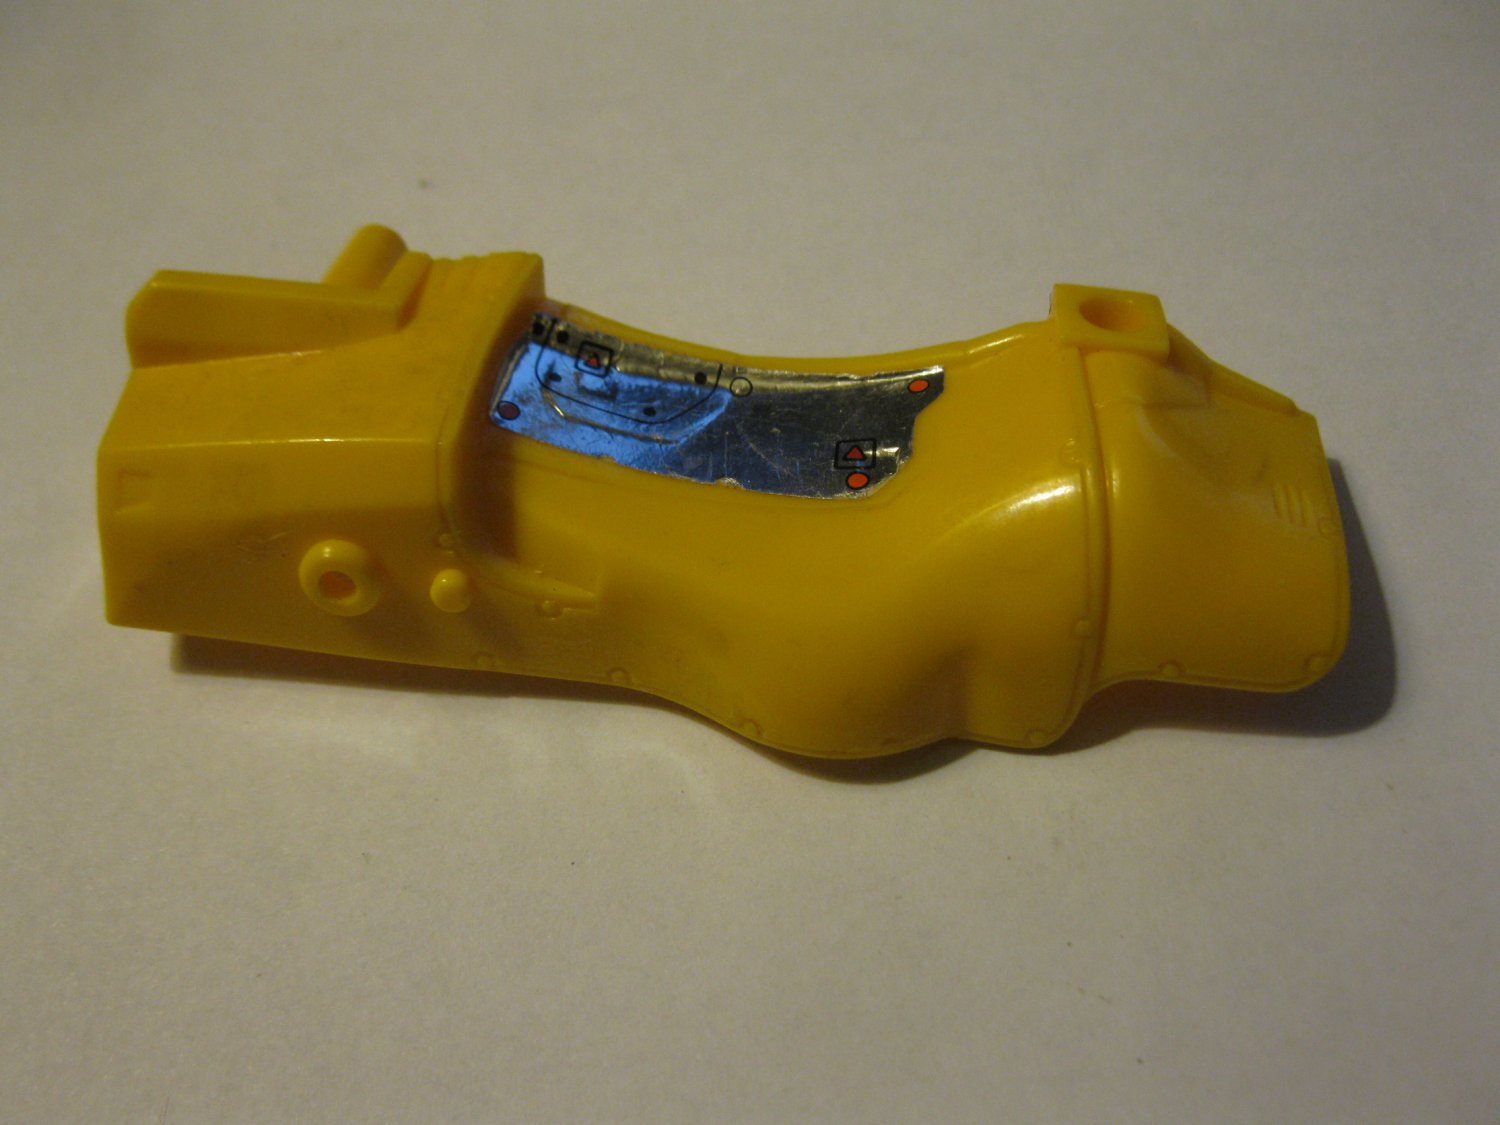 G1 Transformers Action figure part: 1986 Headstrong - Yellow Left Side Body Saddle